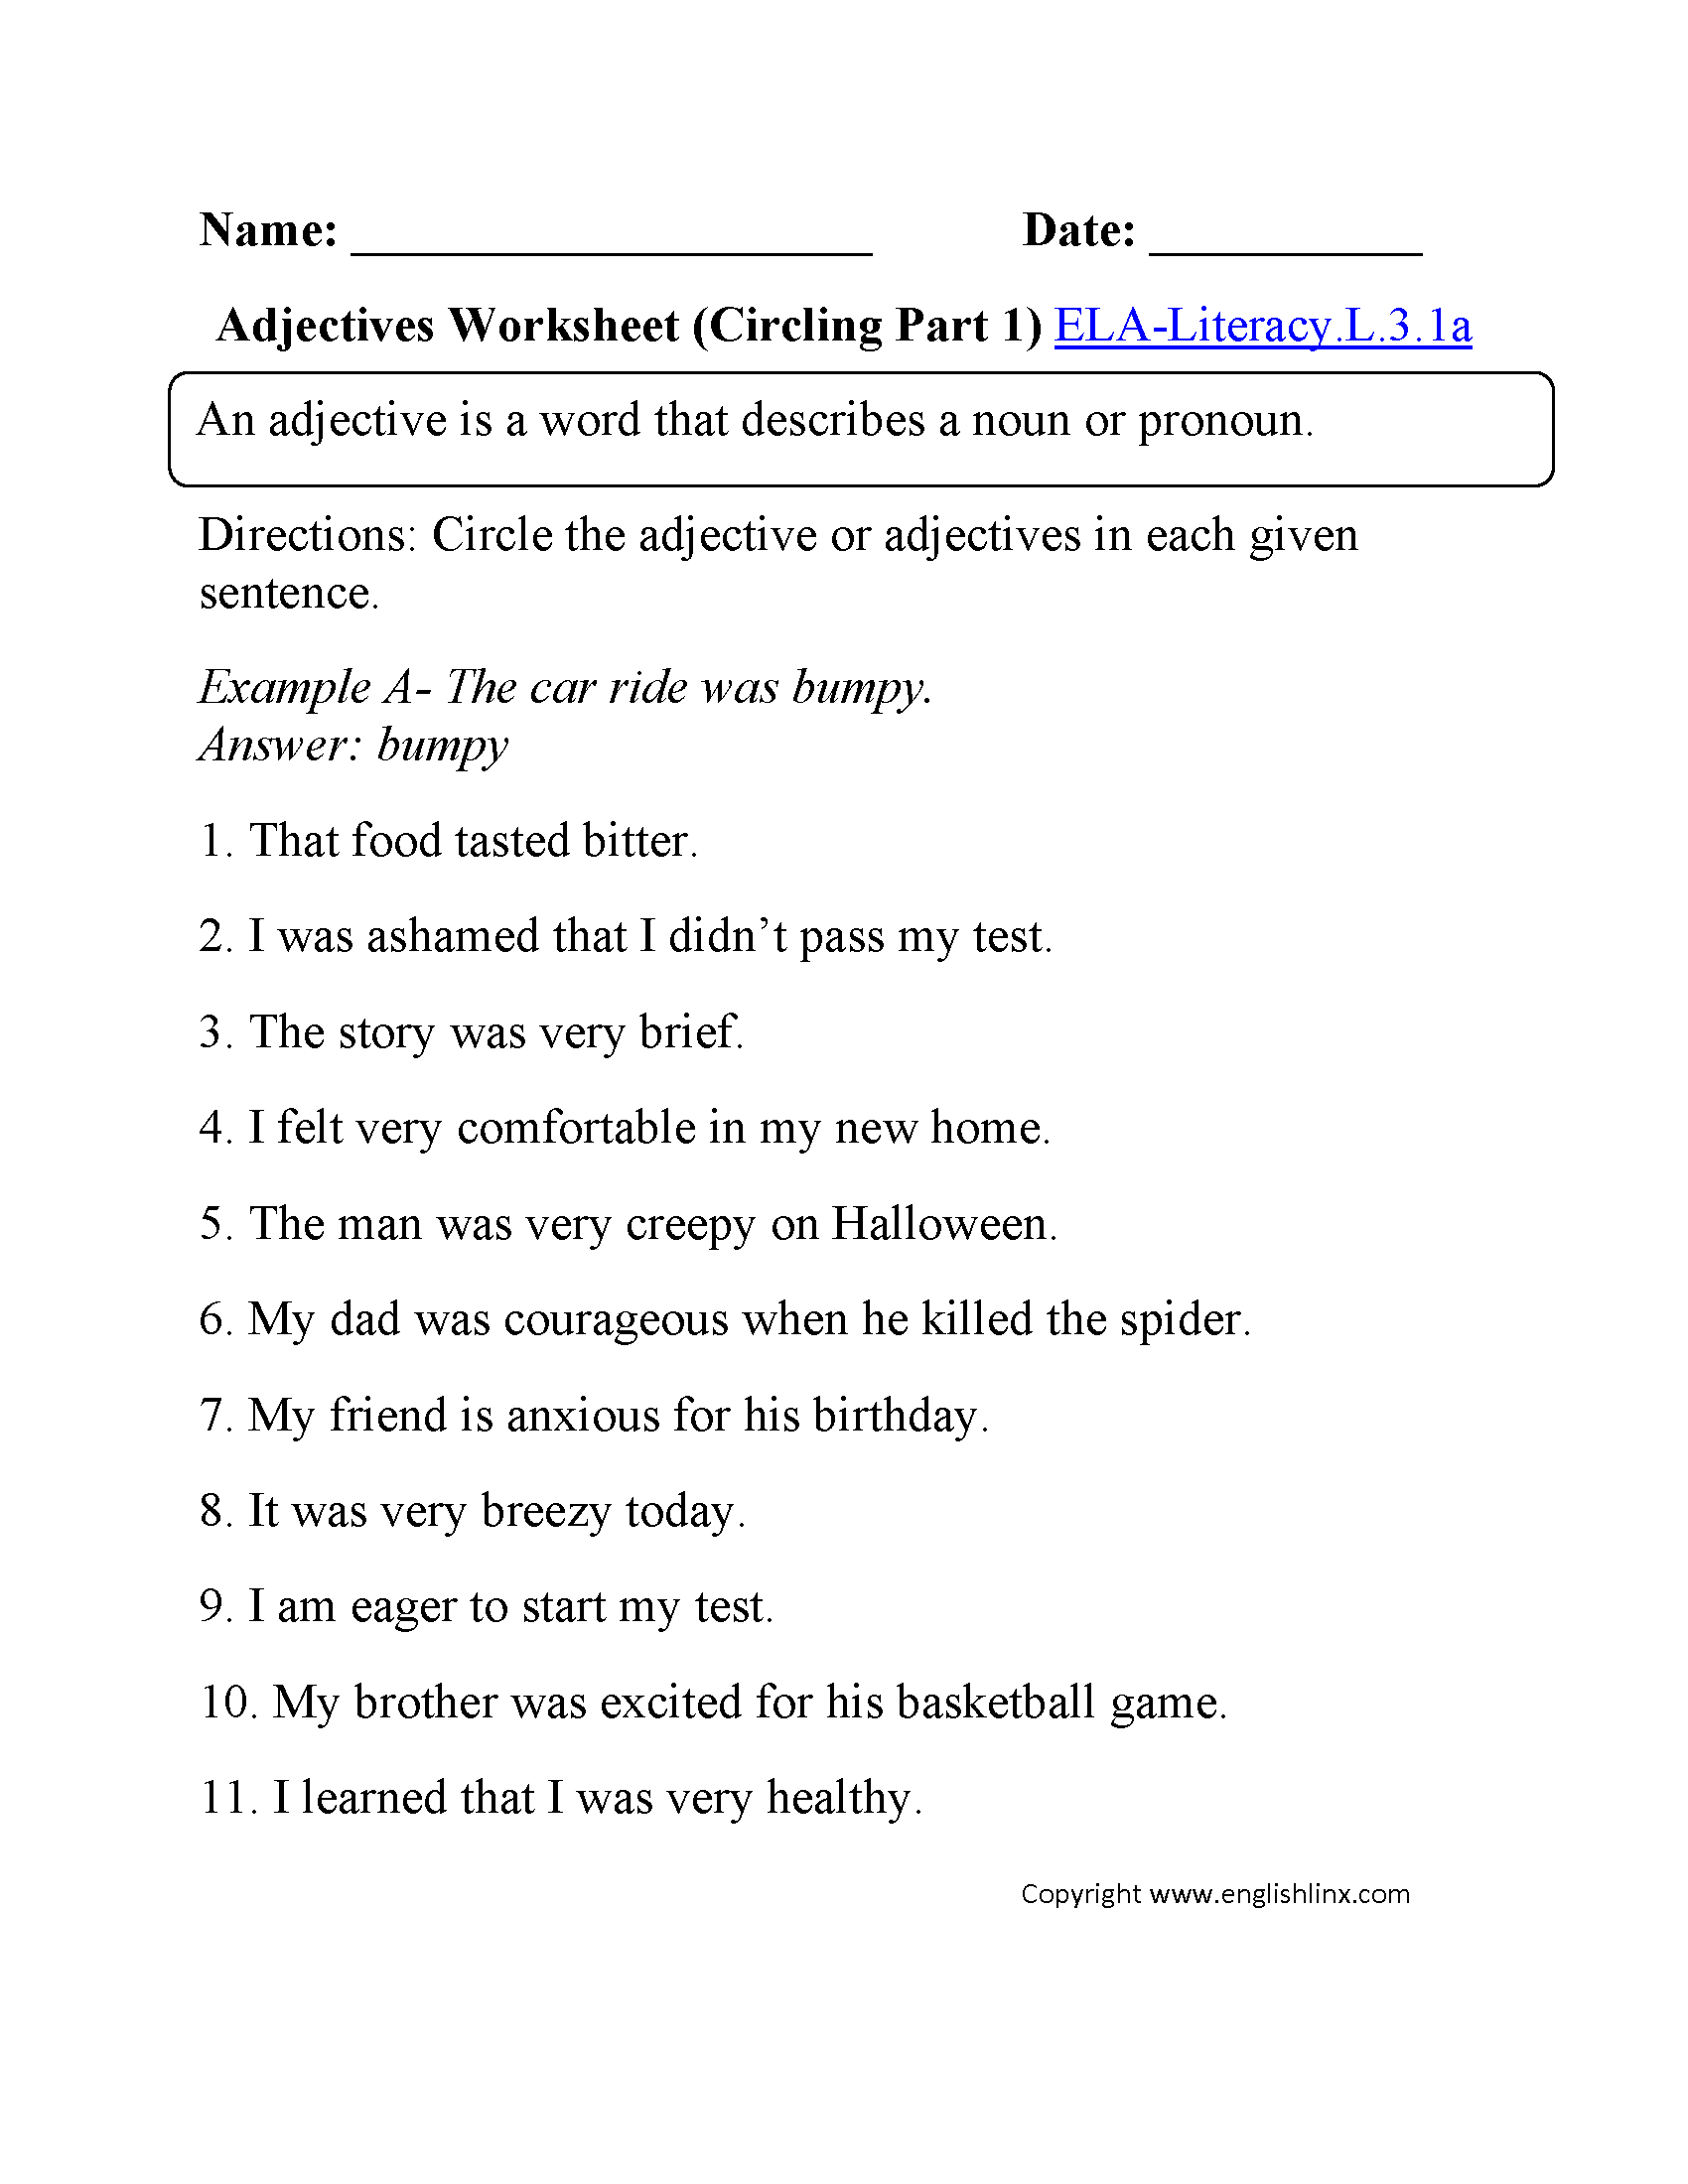 Adjectives Worksheet 1 L 3 1 With Images